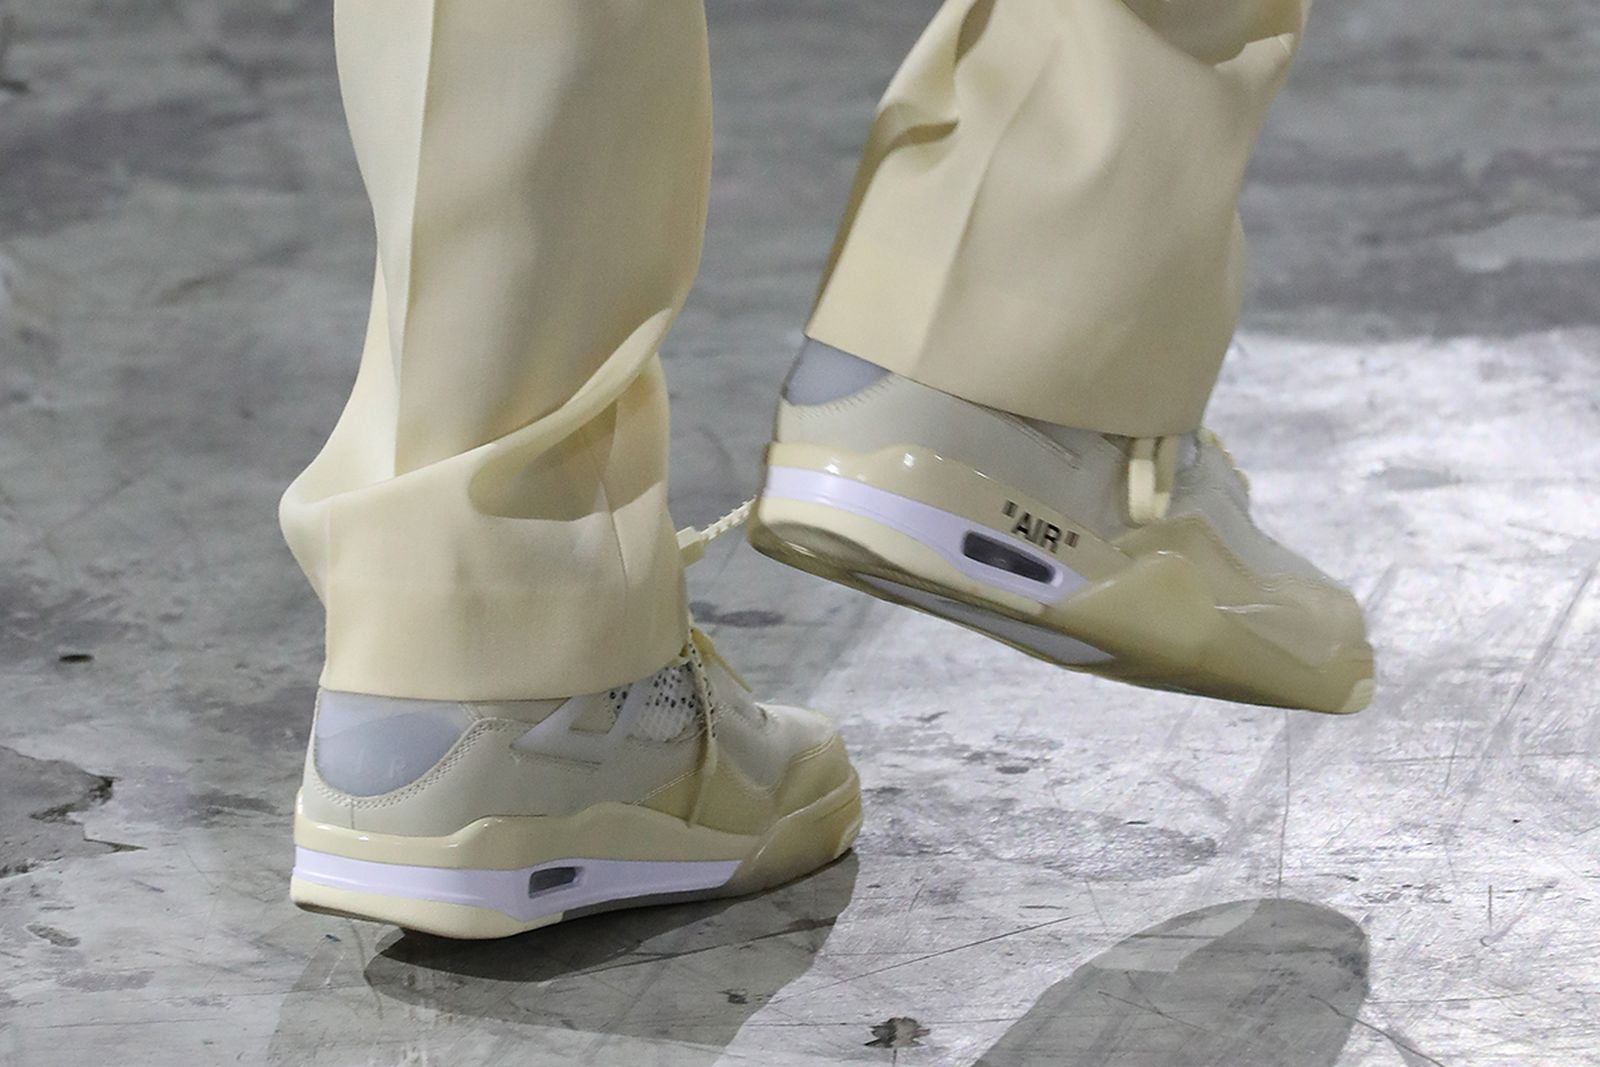 Nike x Off-White Air Jordan shoes during the Off-White show as part of the Paris Fashion Week